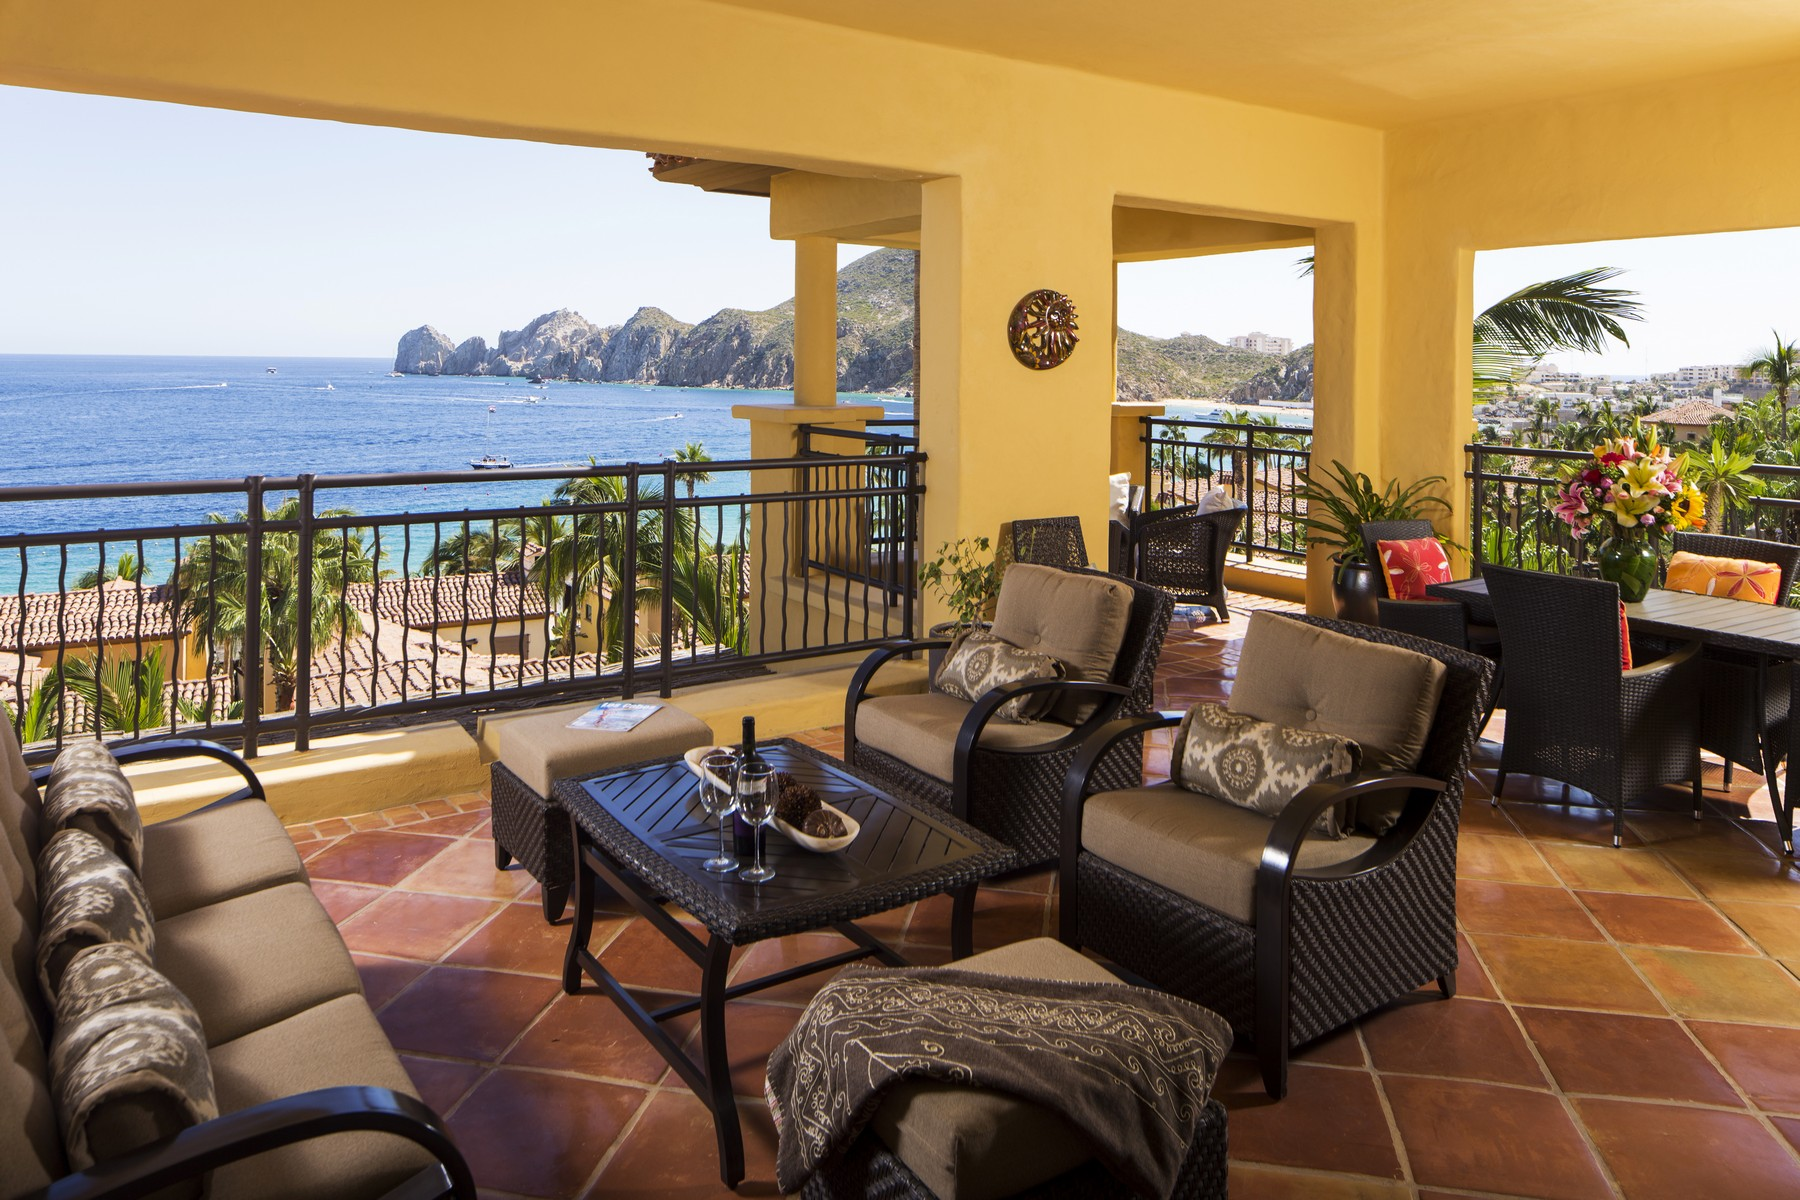 Additional photo for property listing at Collection 2303 Gomez Faria s/n El Medano Ejidal Cabo San Lucas, Baja California Sur 23453 Mexico